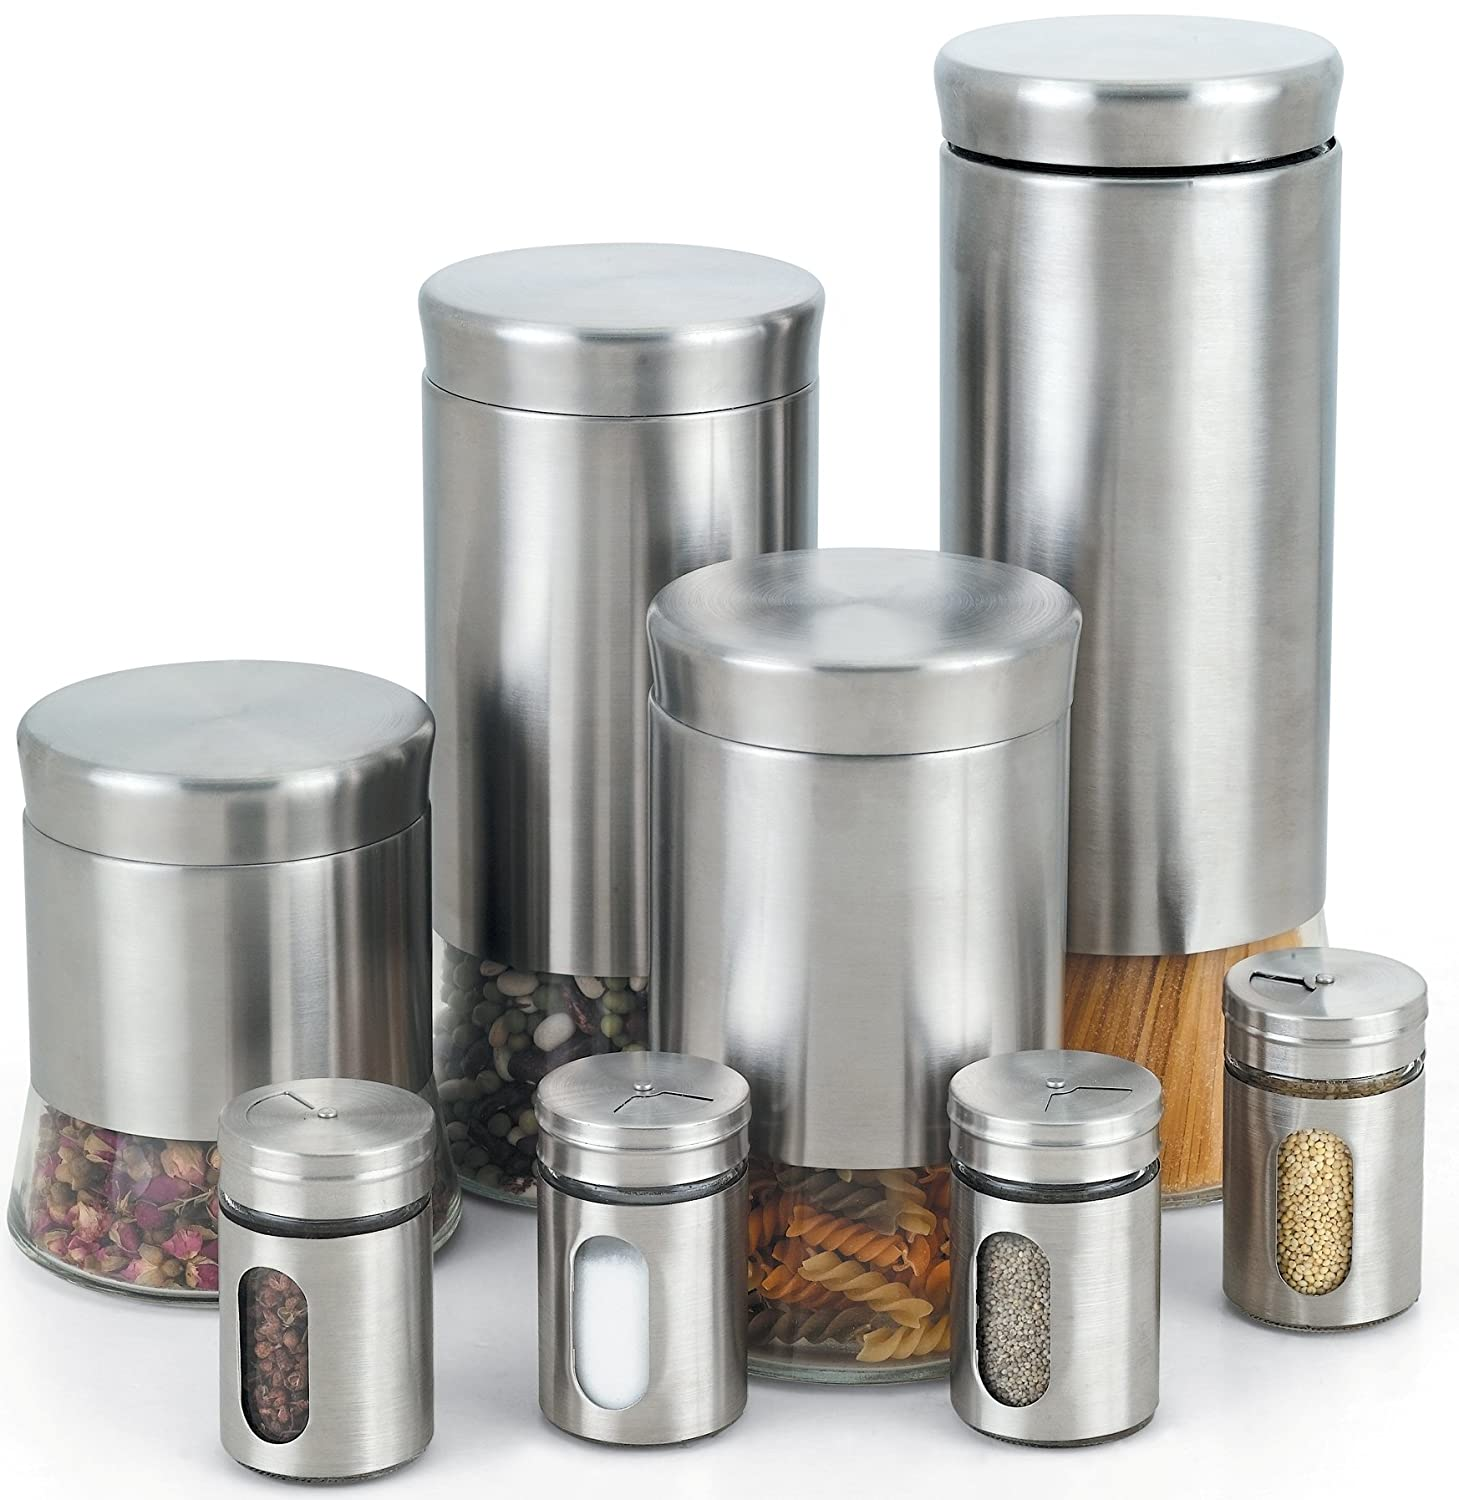 Stainless steel storage containers for kitchen - Amazon Com Cook N Home Stainless Steel Canister And Spice Jar Set 8 Piece Kitchen Dining